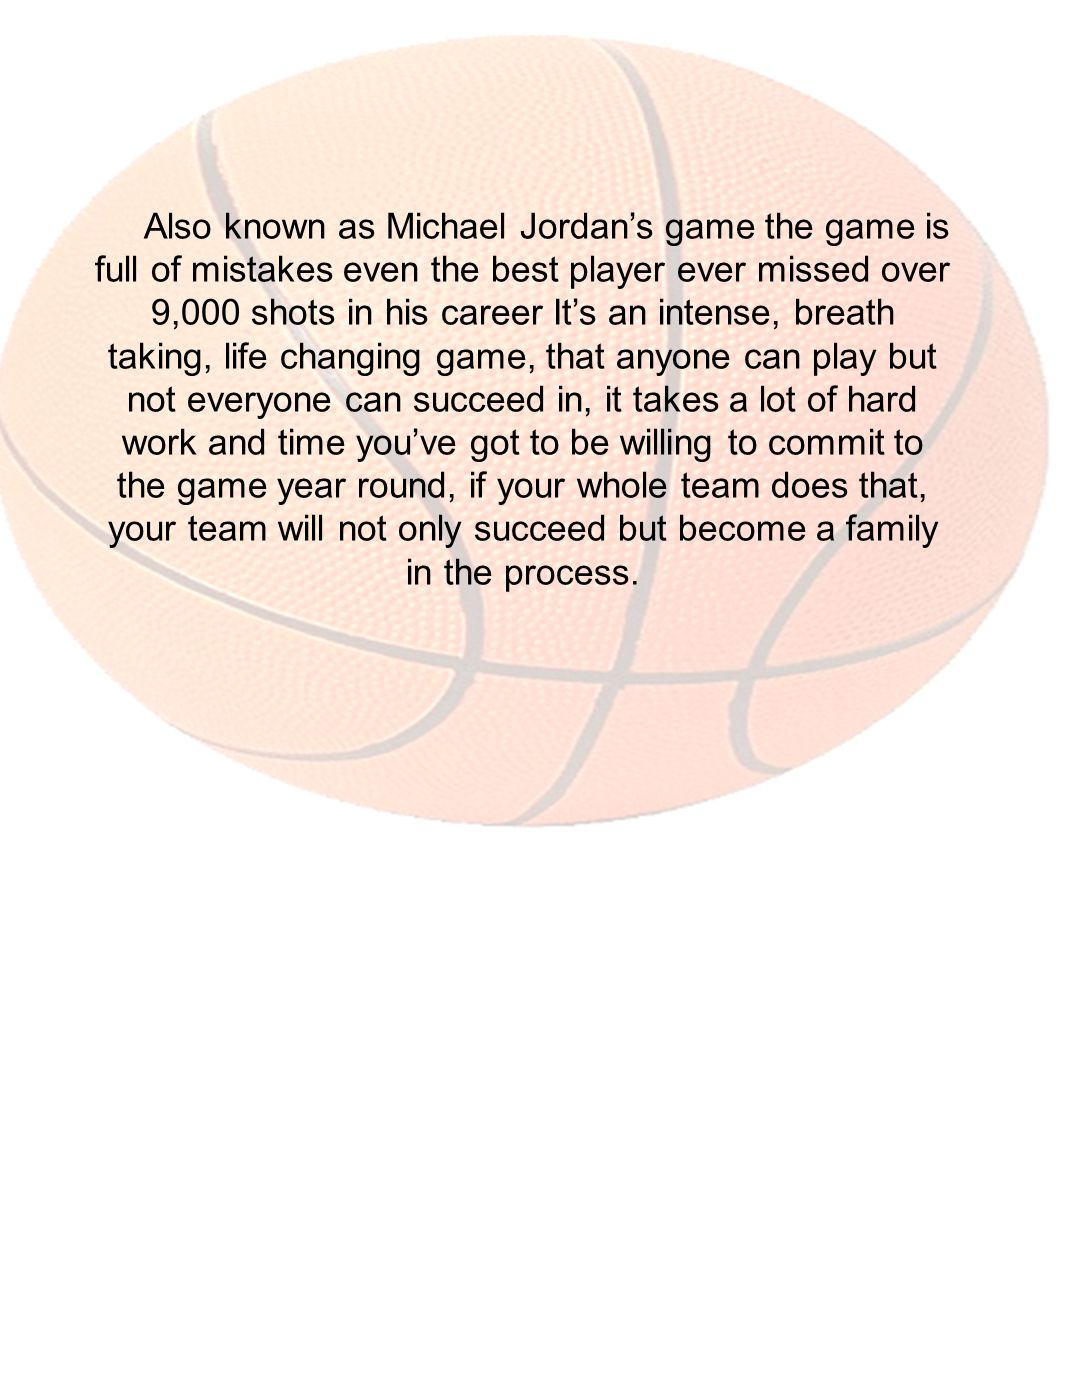 Also known as Michael Jordan's game the game is full of mistakes even the best player ever missed over 9,000 shots in his career It's an intense, breath taking, life changing game, that anyone can play but not everyone can succeed in, it takes a lot of hard work and time you've got to be willing to commit to the game year round, if your whole team does that, your team will not only succeed but become a family in the process.